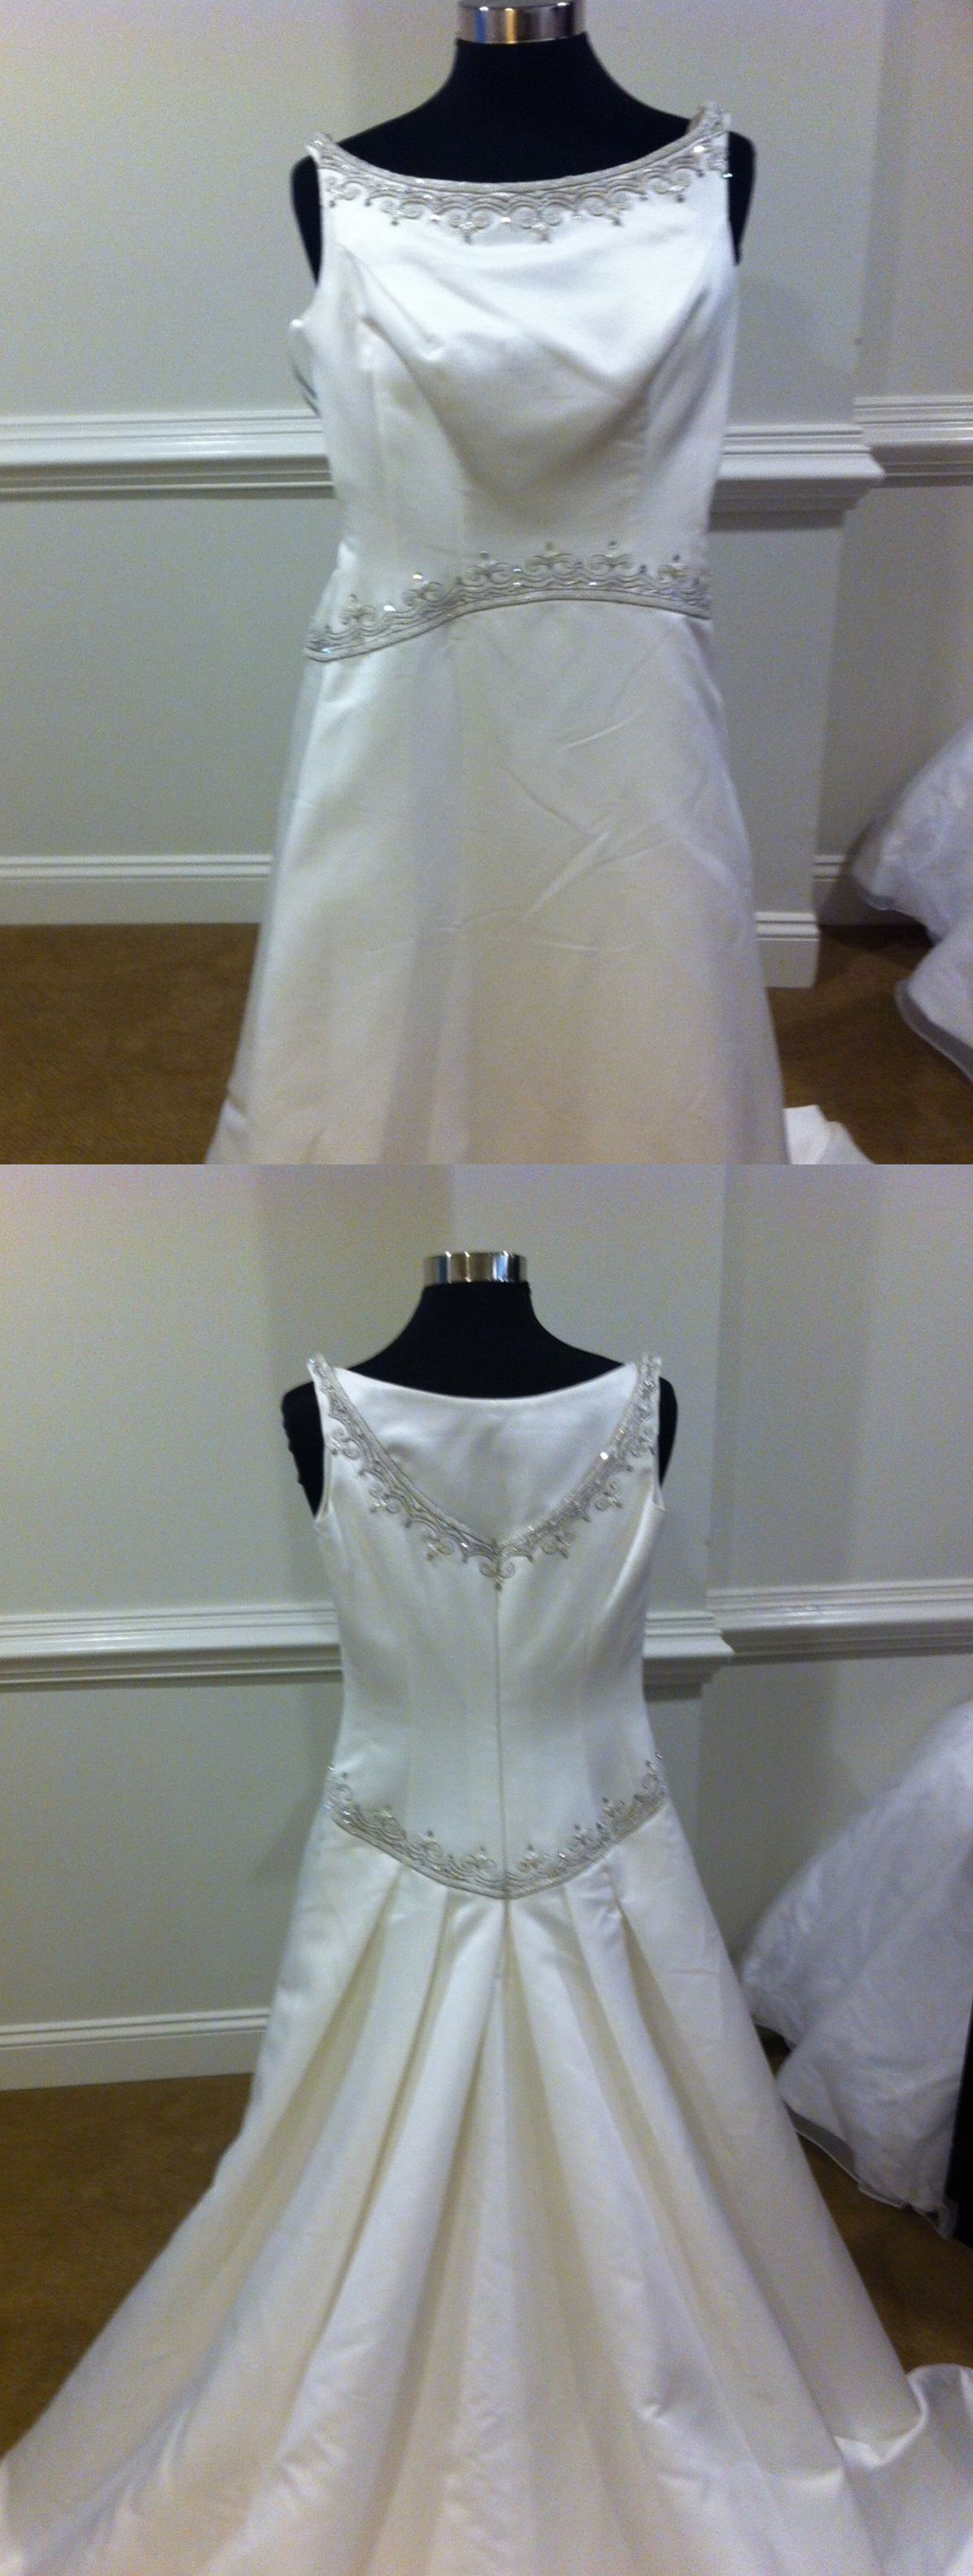 Wedding Gown from St. Anthony\'s bridal in Fairfax, VA | Modest ...